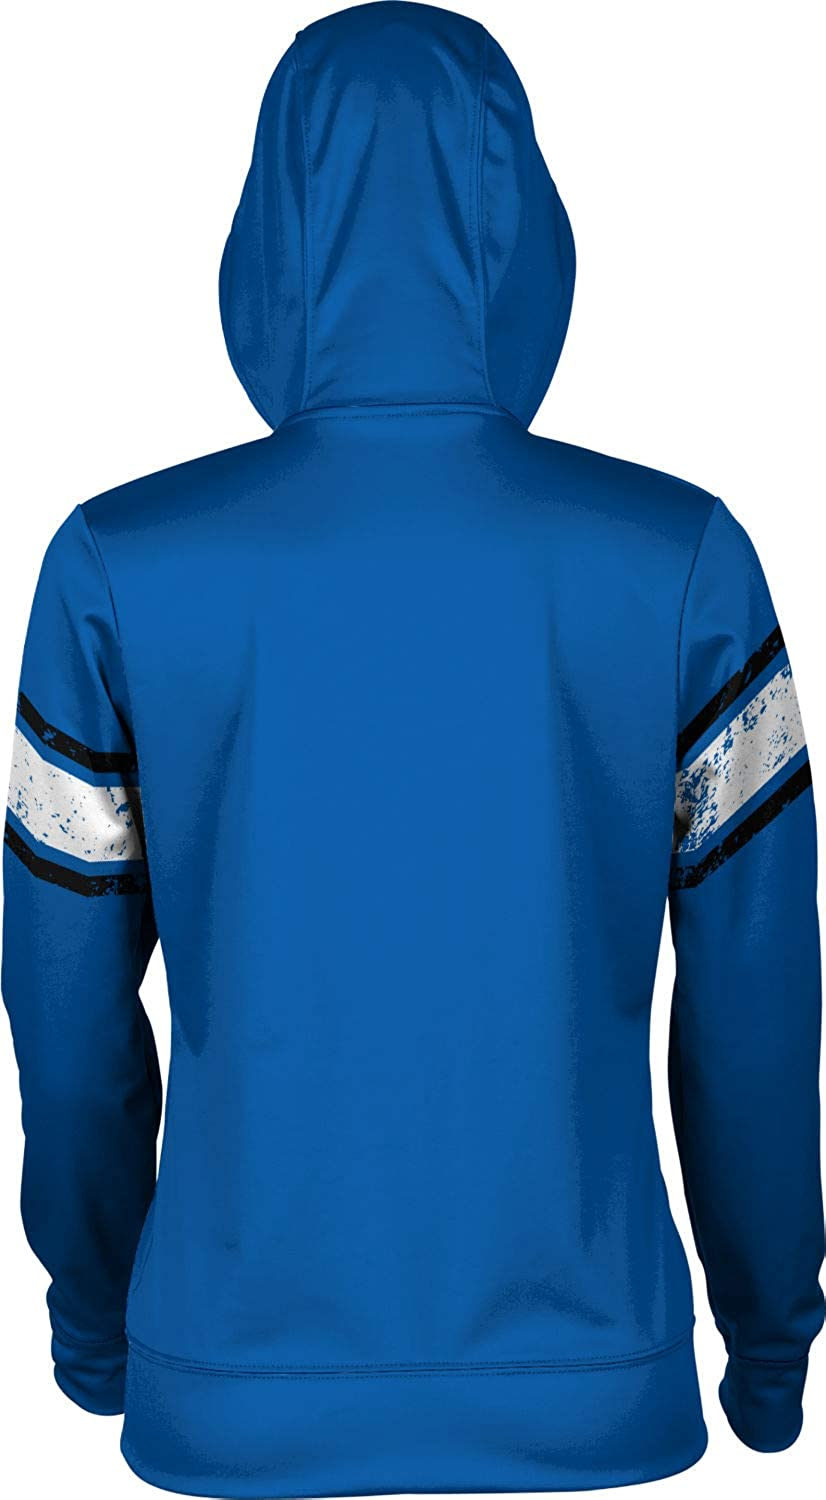 School Spirit Sweatshirt End Zone Hampton University Girls Pullover Hoodie